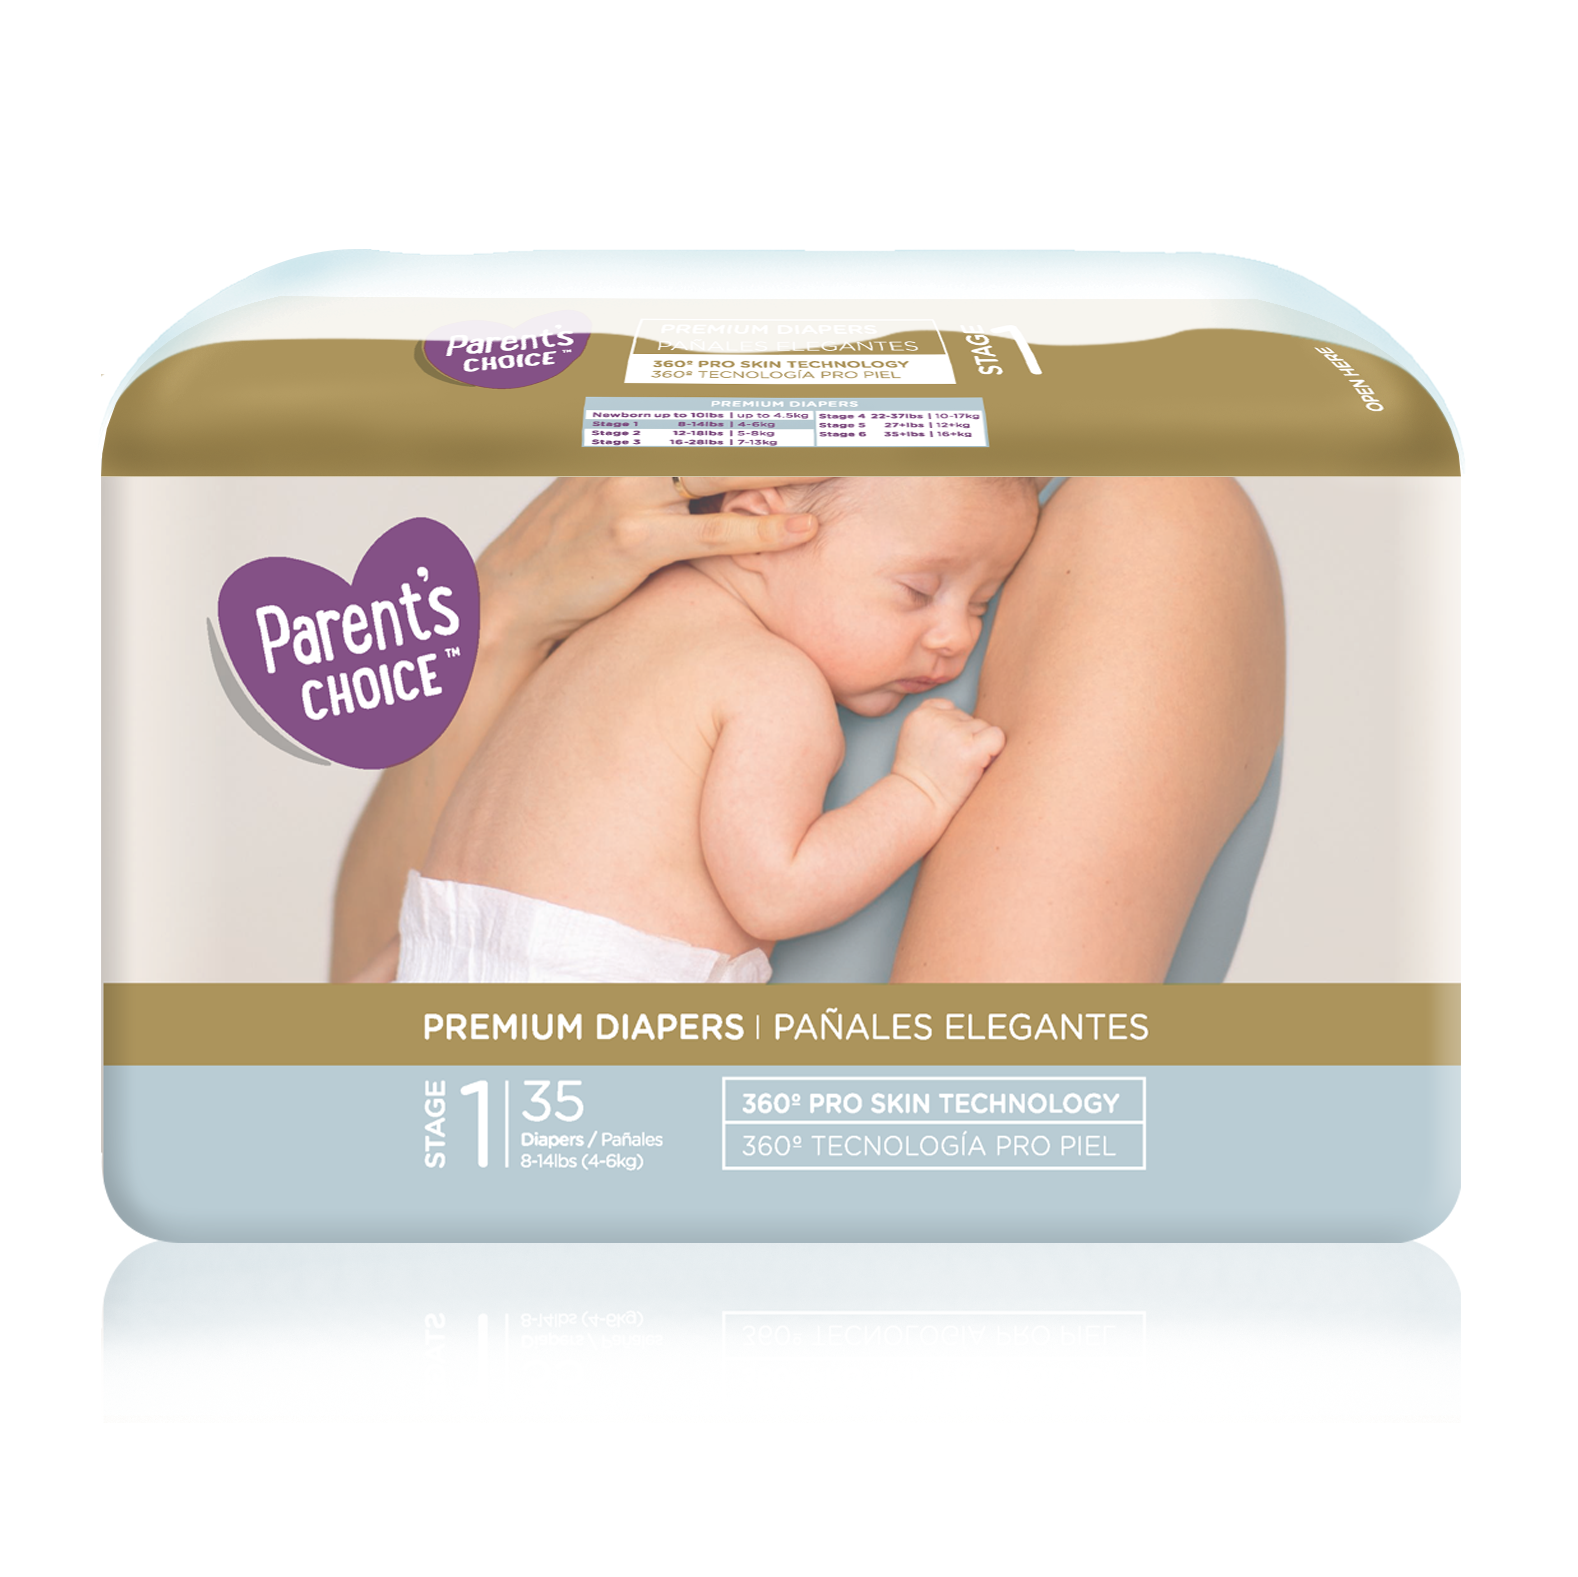 Parent's Choice Premium Diapers, Size 1, 35 Diapers